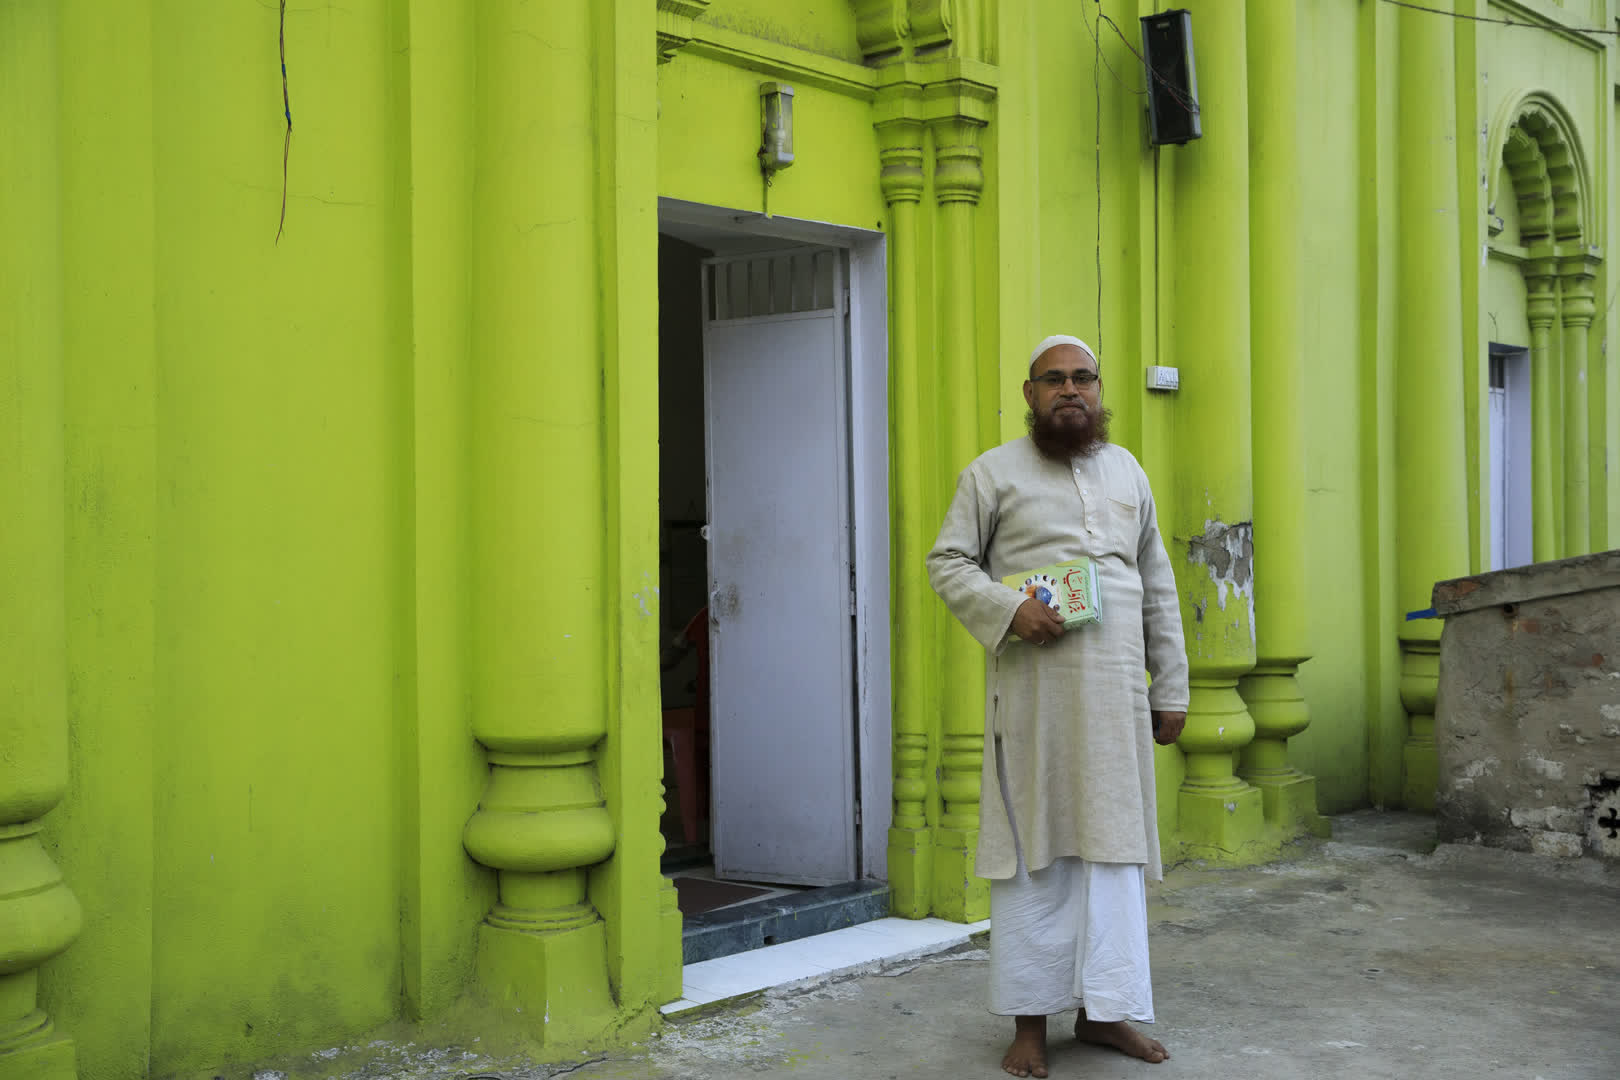 The imam of the mosque